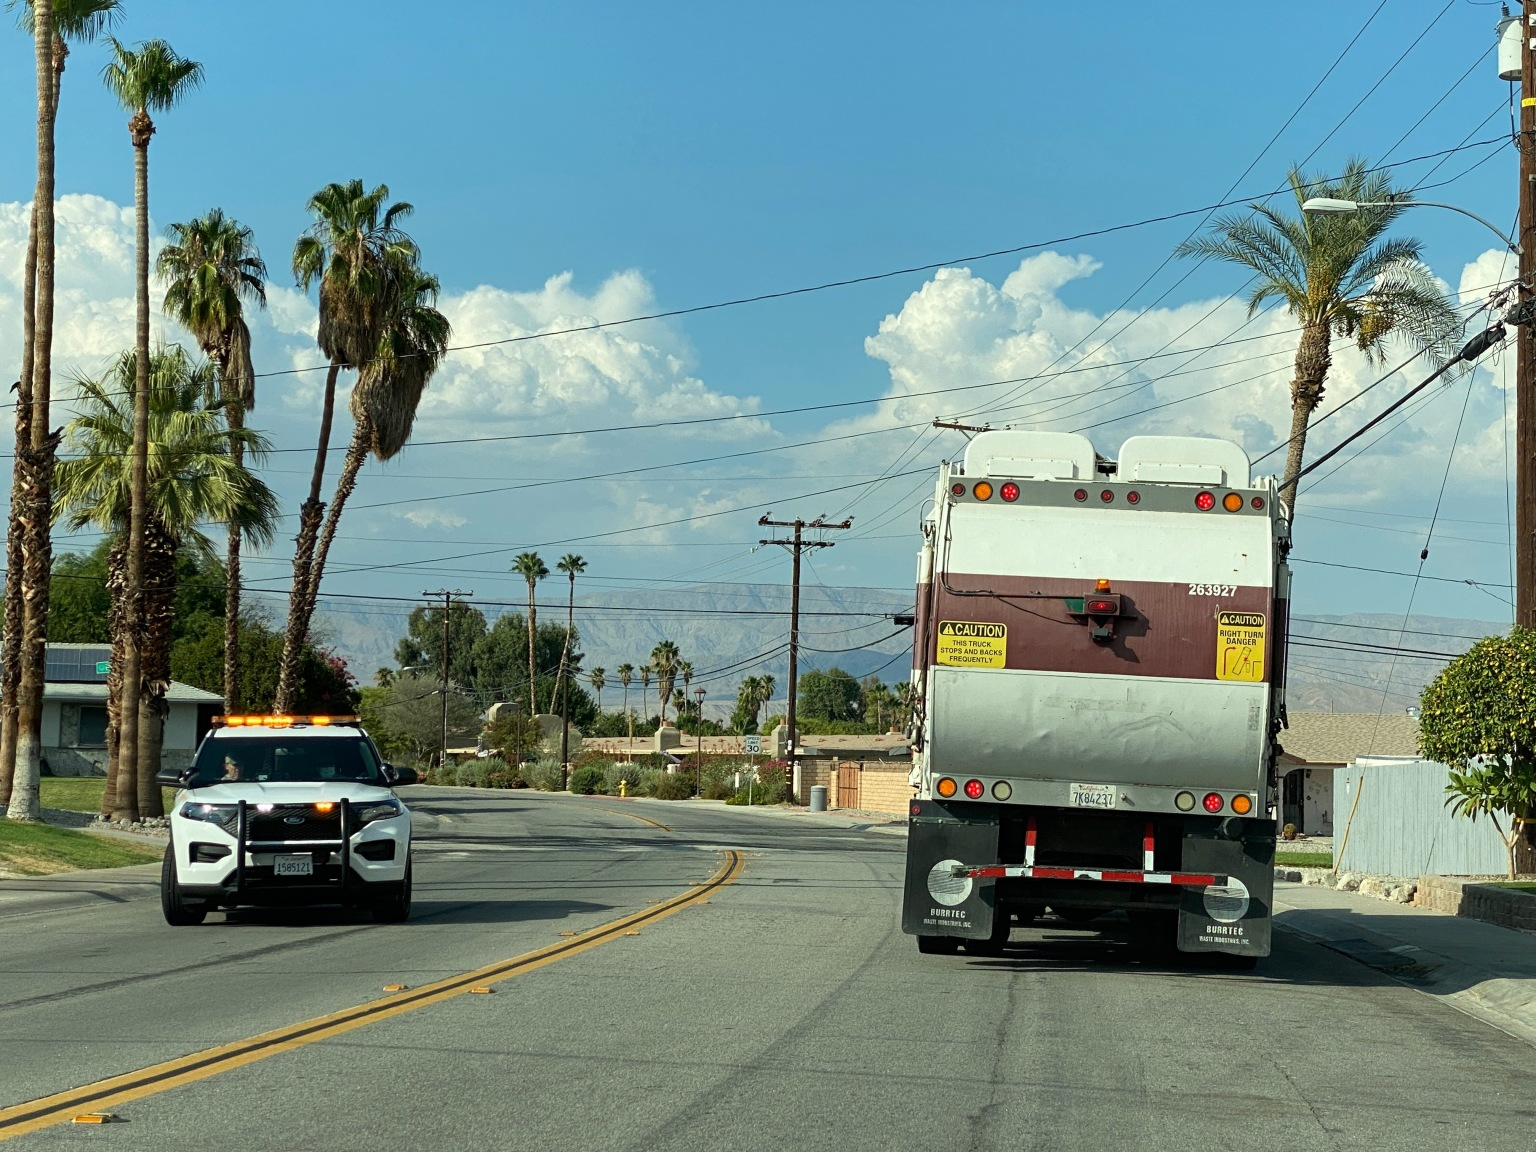 Trash Truck Crashes into Power lines causing Outage